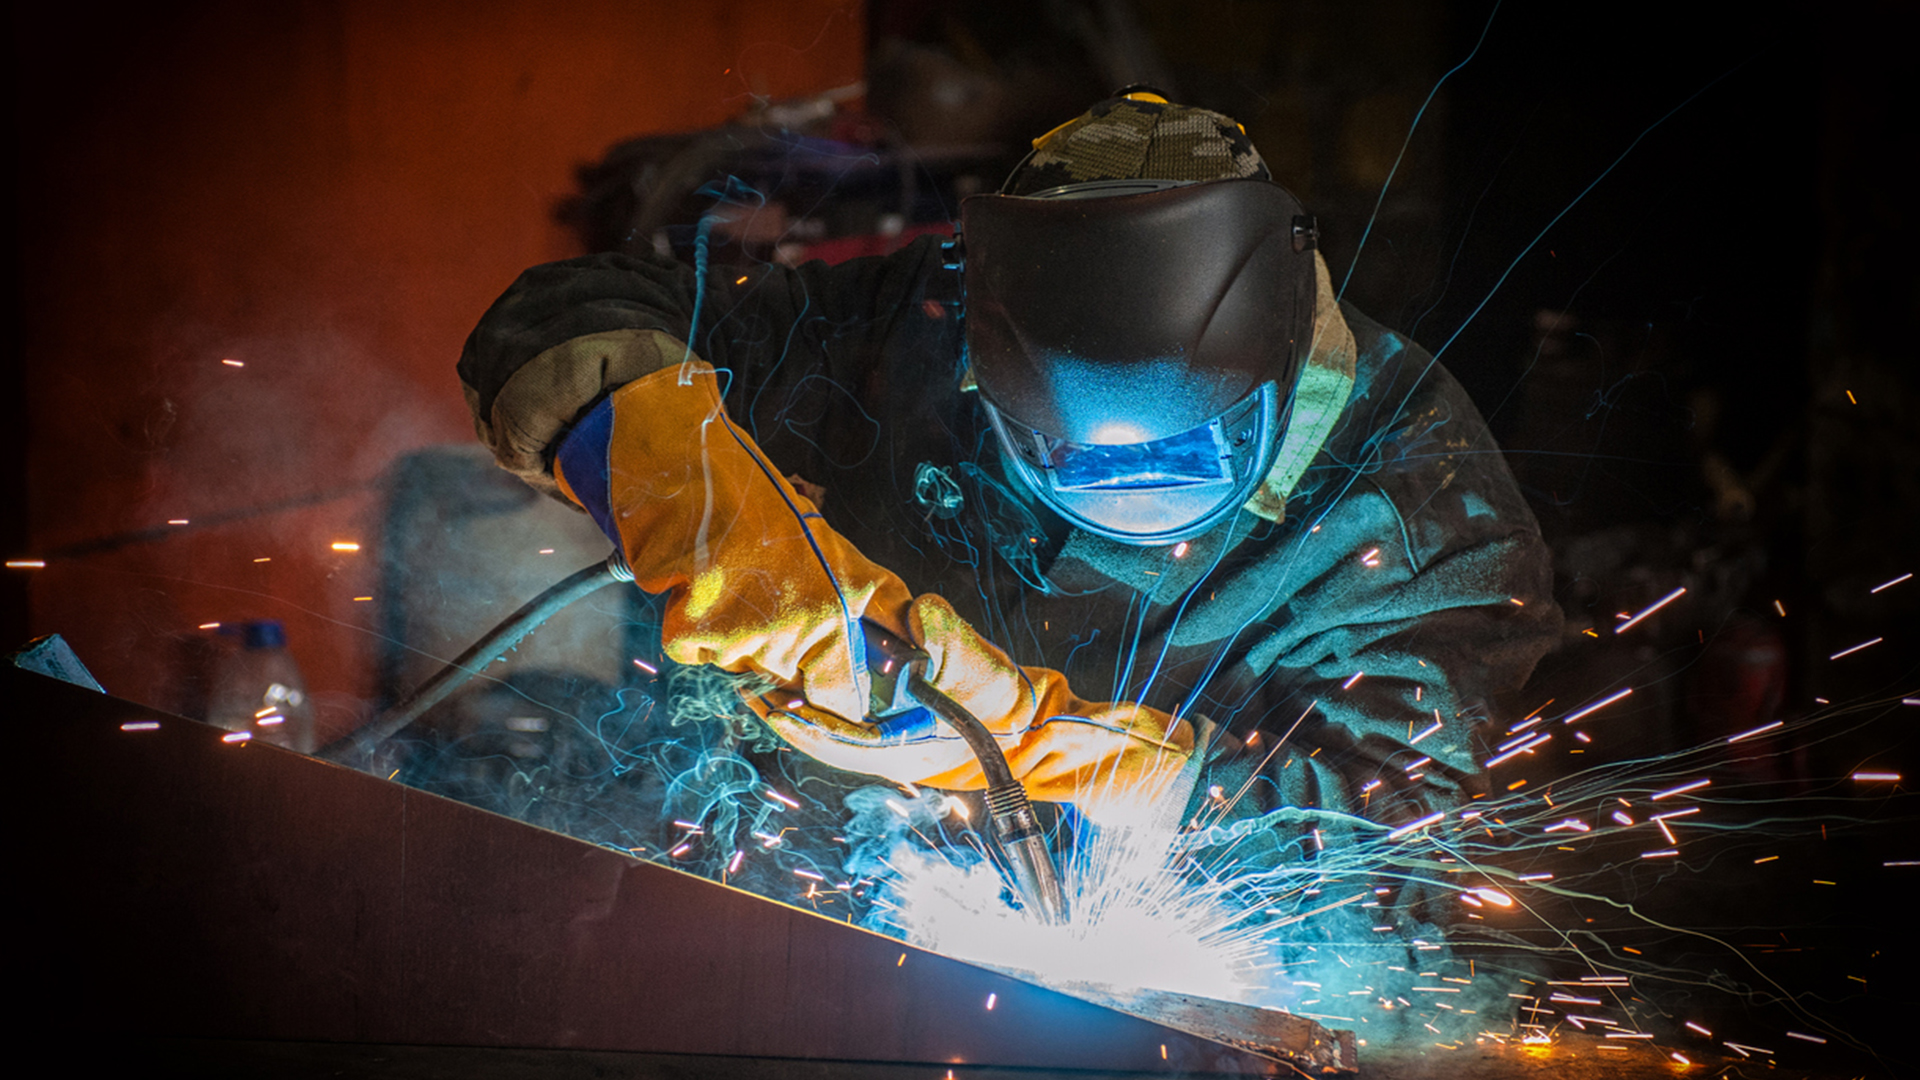 Welder welding with sparks and protective equipment